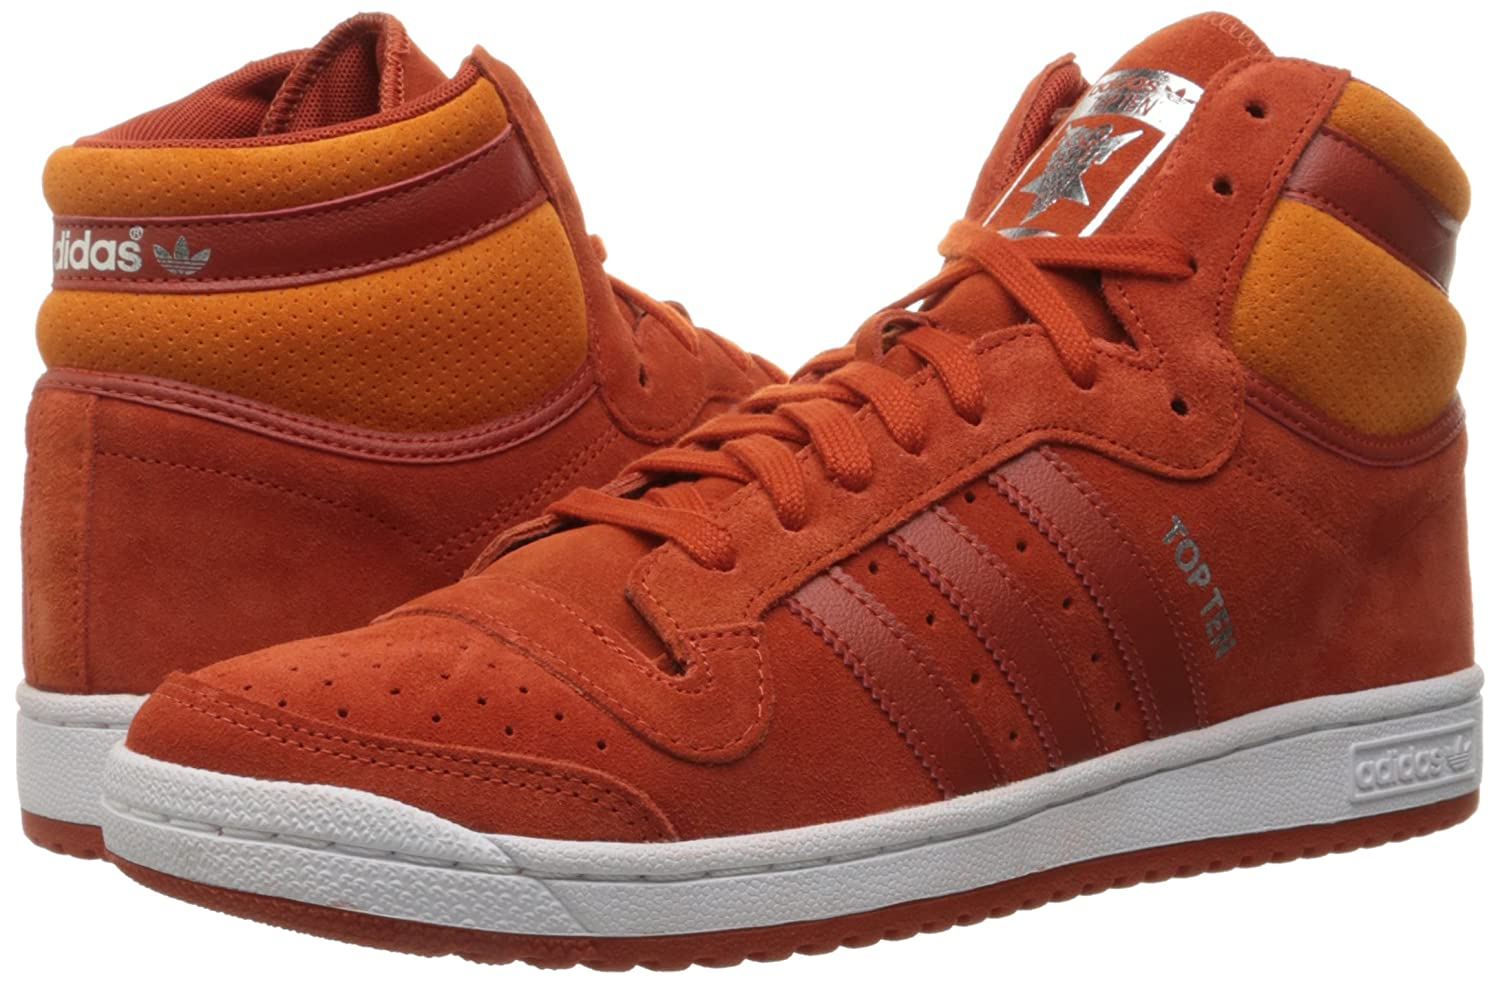 info for 374bf 0dde8 Amazon.com   adidas Men s Top Ten HI Fashion Sneaker   Fashion Sneakers